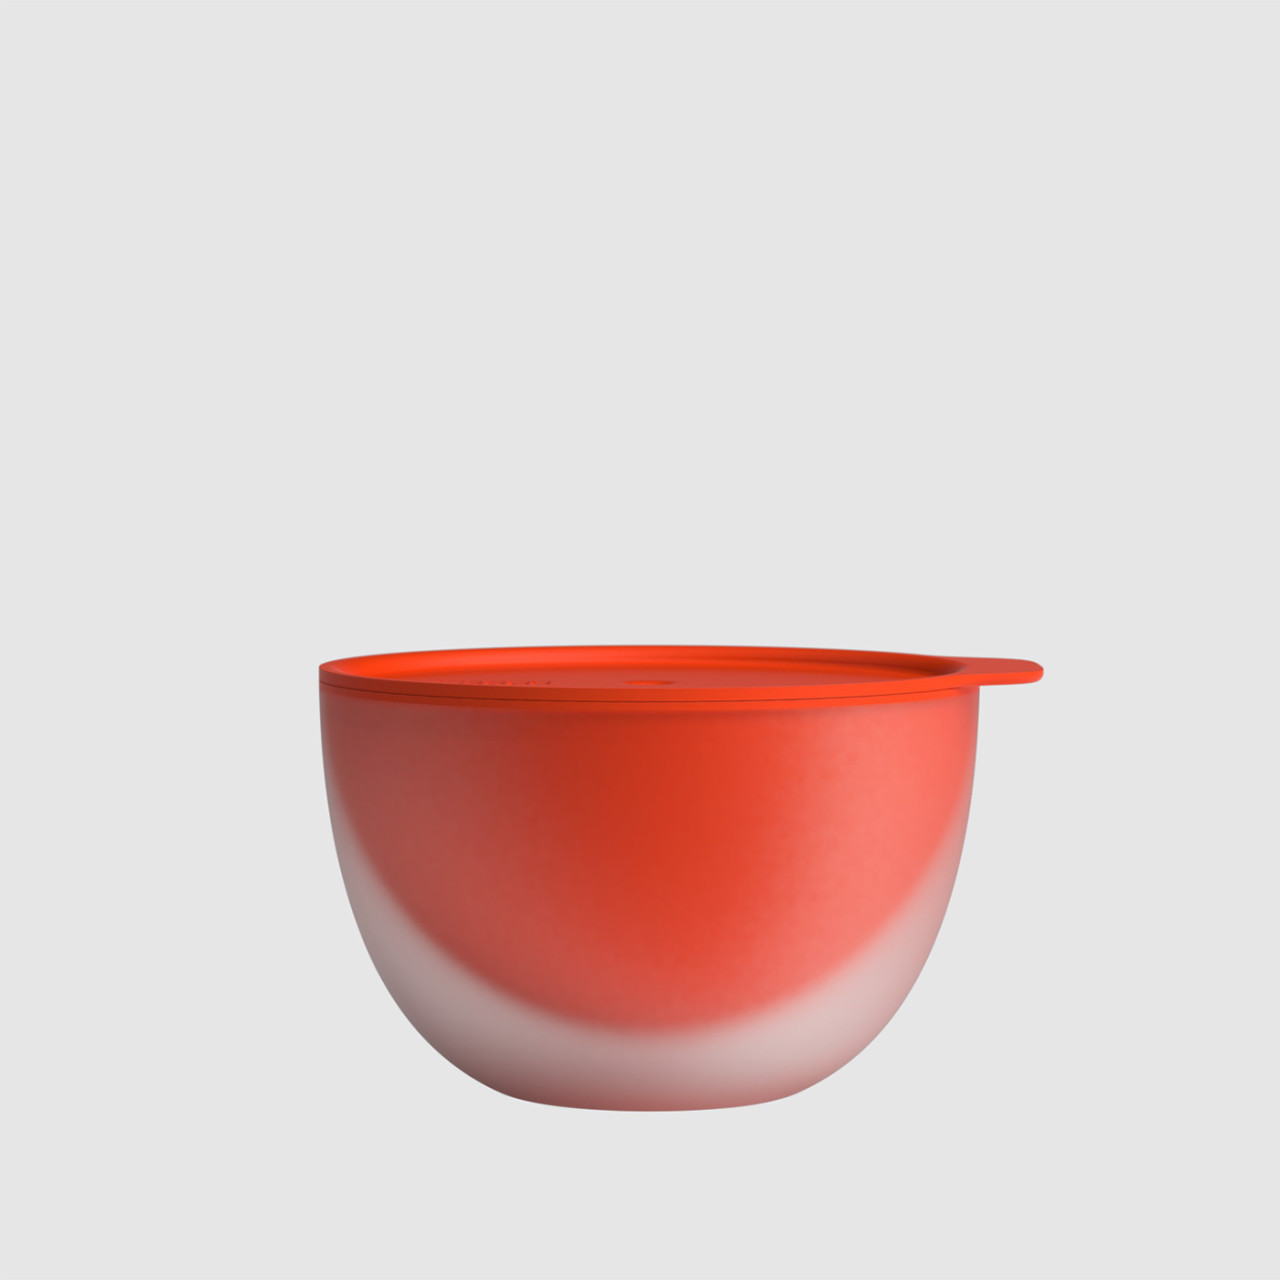 156568588011 – youmeus design cool touch bowls